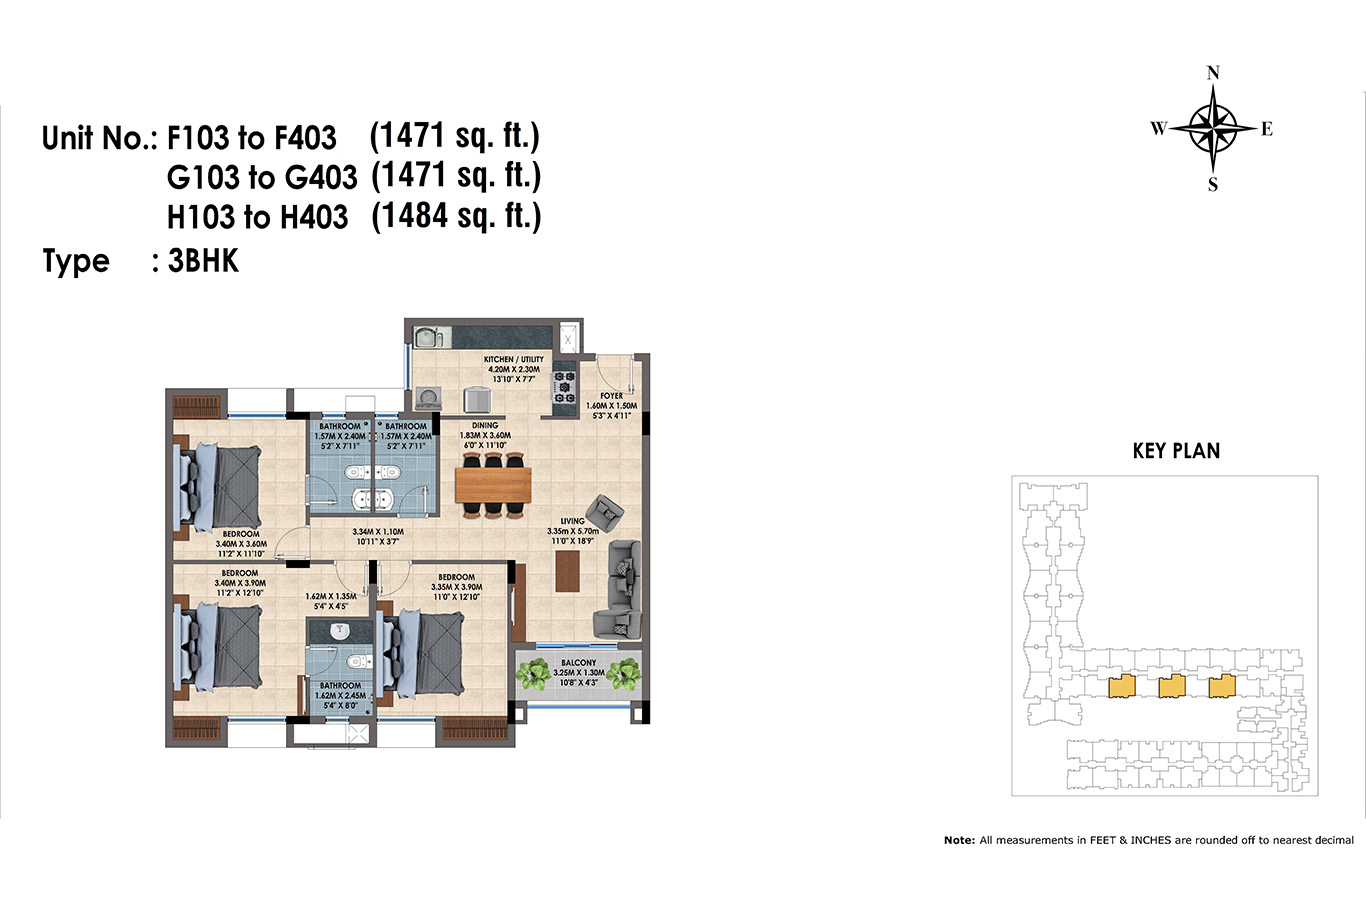 F,G,H 103 to 403(3BHK)